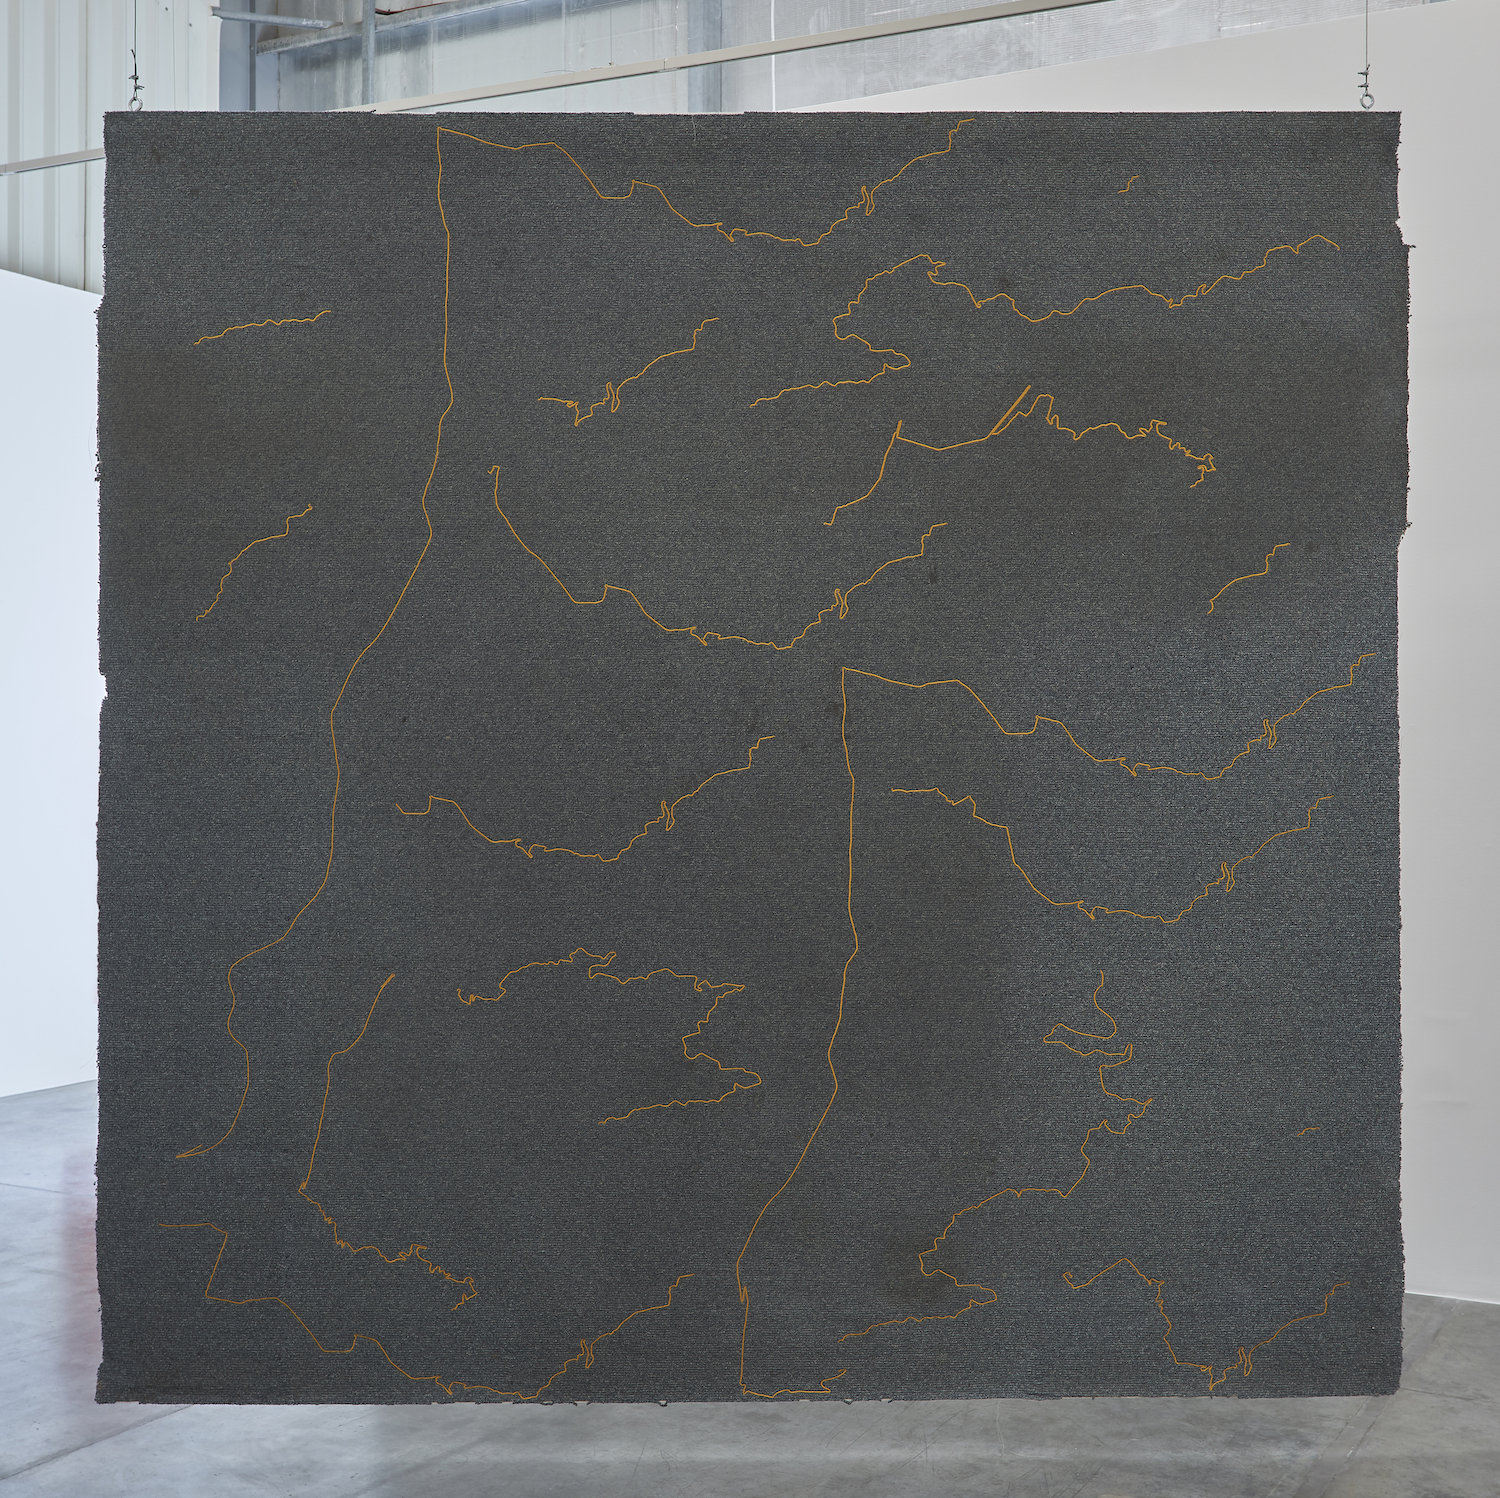 The Encounter of the First and Last Particles of Dust 2019 Used carpet, gold thread embroidery 333.5 x 336.5 cm  The carpet of the room which the artist occupied as a teenager, from 1995 to 2001, is torn off and embroidered with the 18 most significant trajectories underwent during this time span.